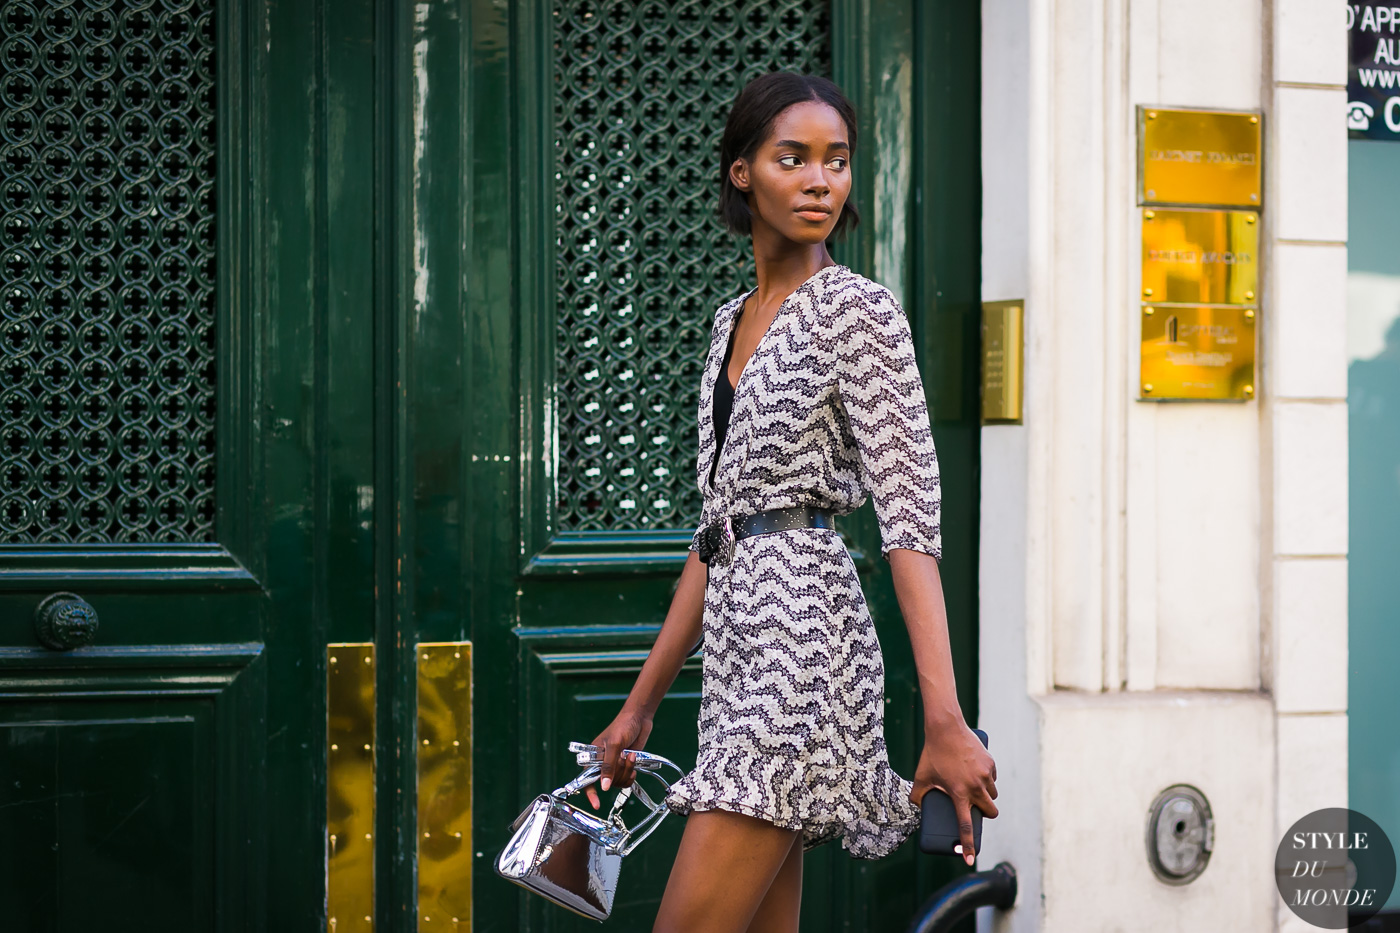 Model Tami Williams on her way to the next show